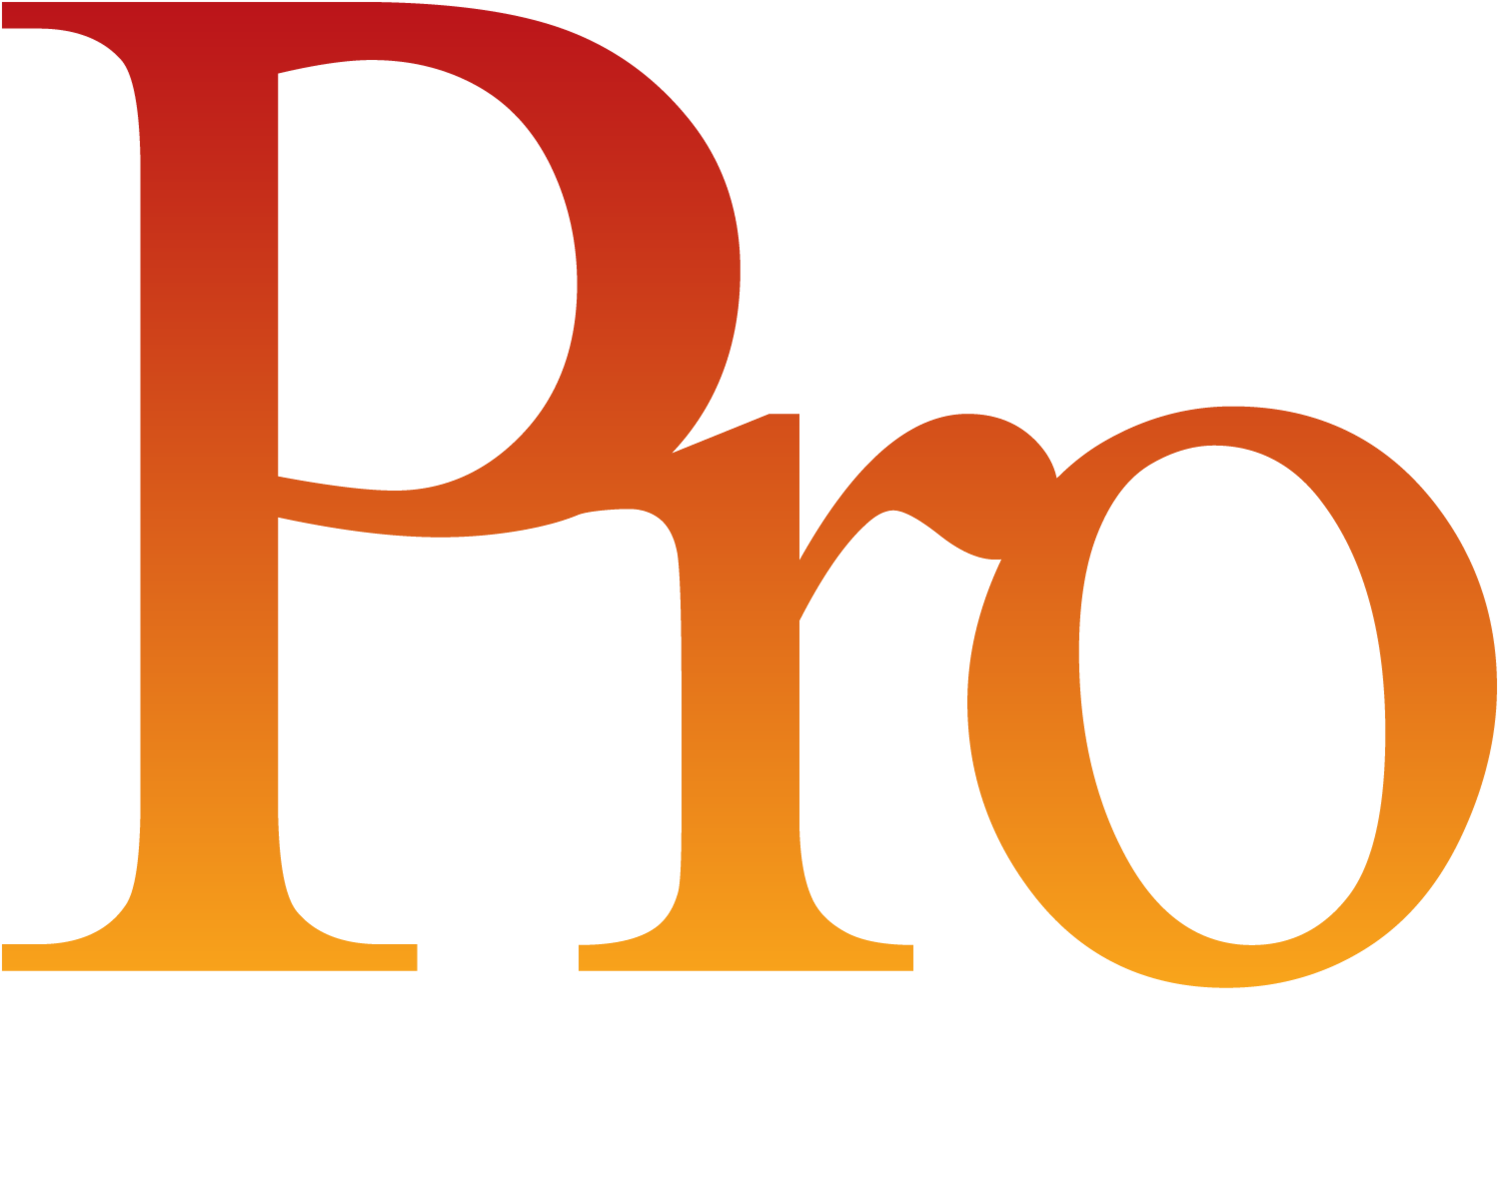 Pro Products Mfg. | Sound Wall and Office Wall Solutions